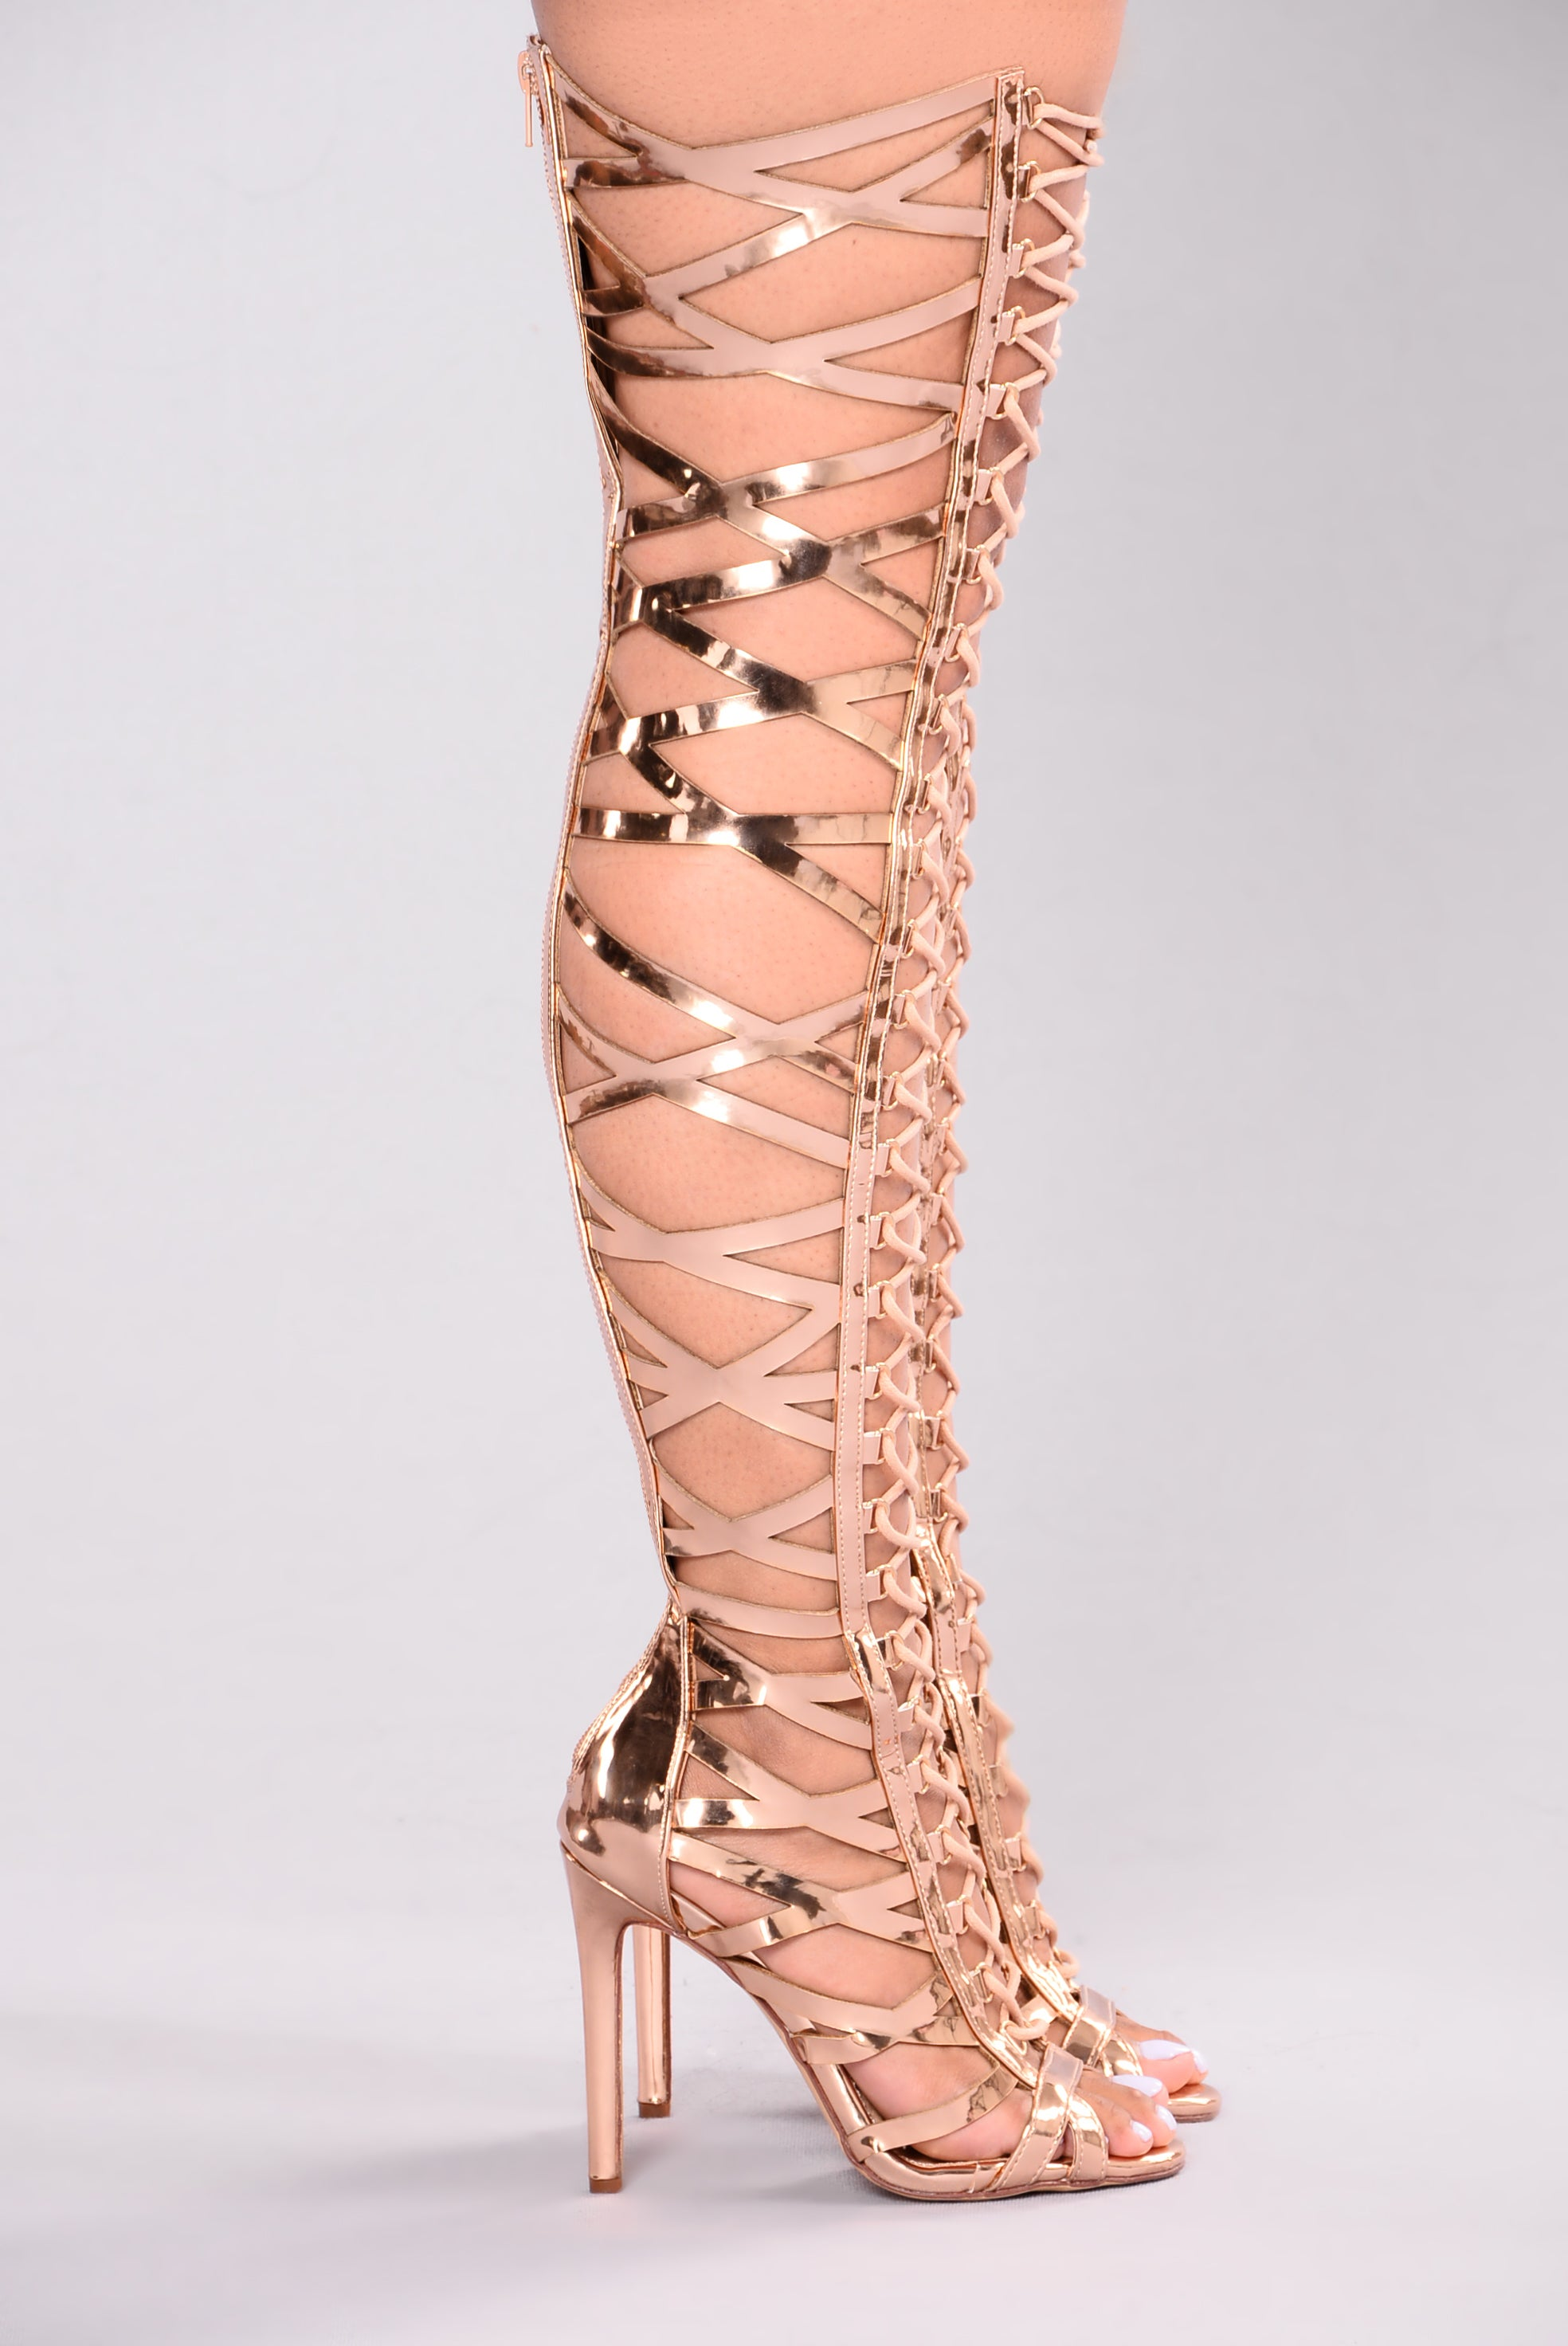 gladiator heel over the knee rose gold. Black Bedroom Furniture Sets. Home Design Ideas